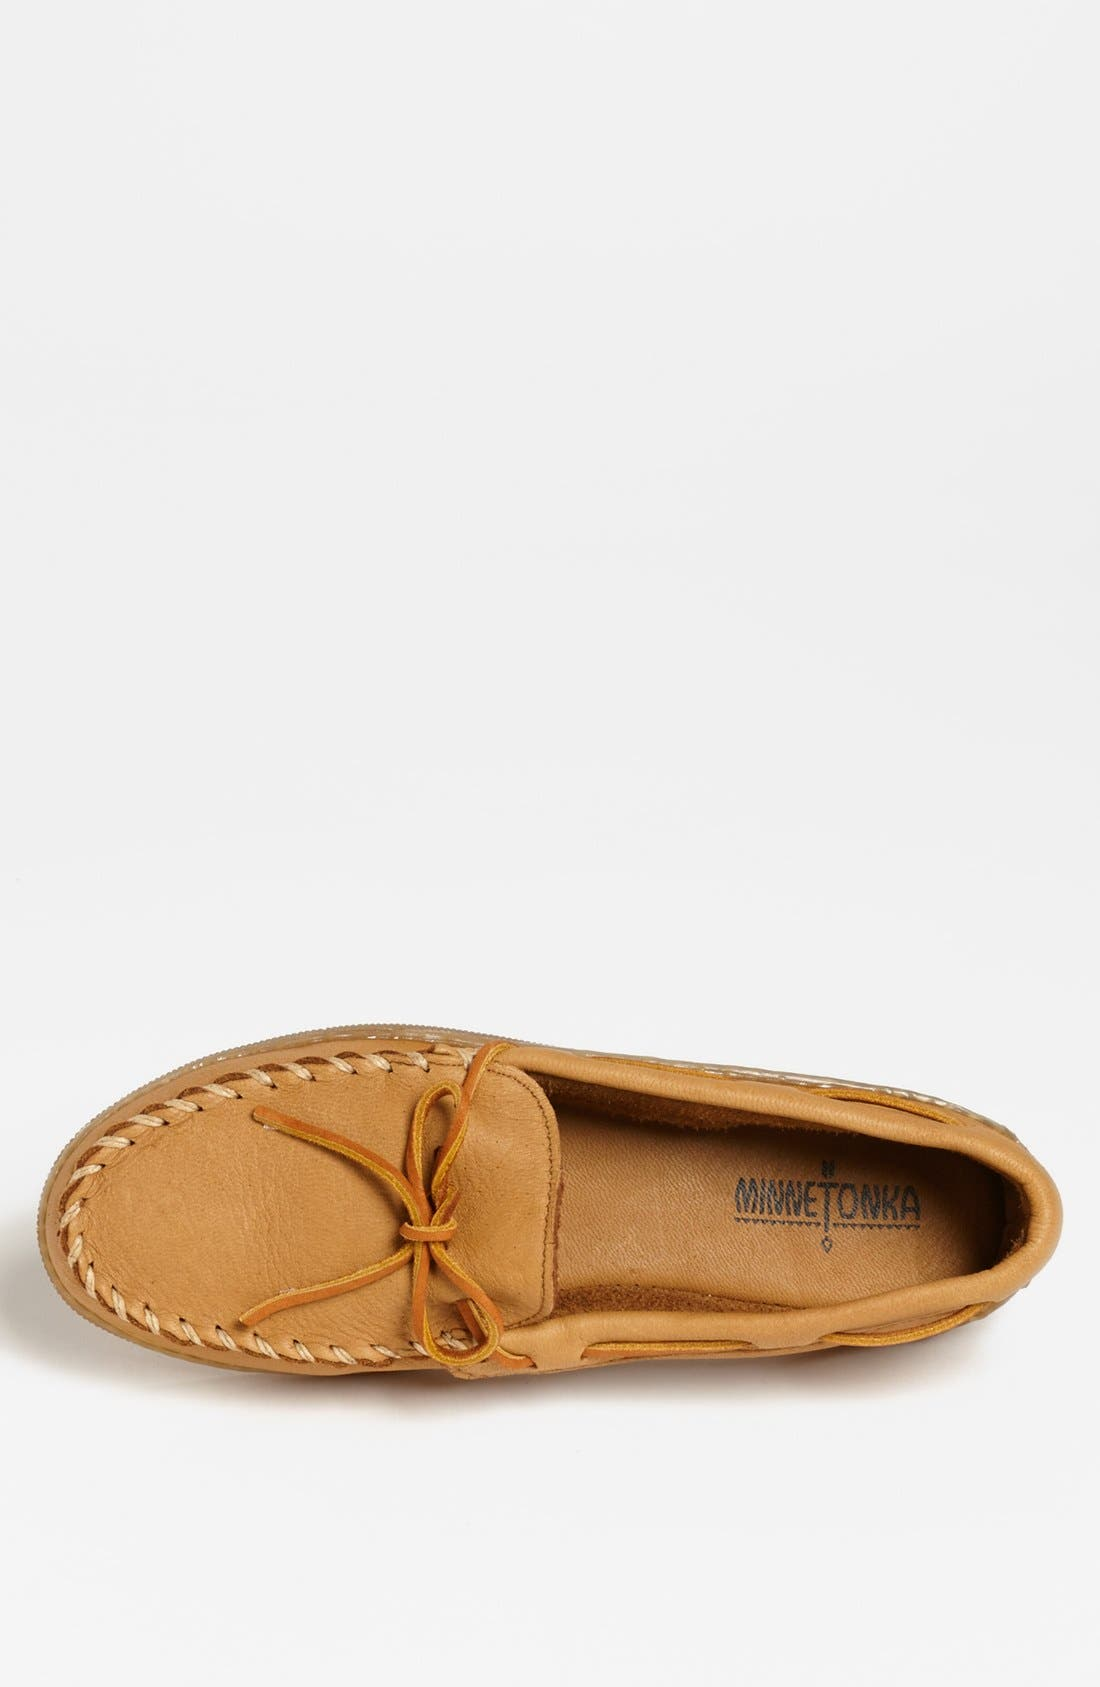 Moosehide Moccasin,                             Alternate thumbnail 3, color,                             NATURAL MOOSE